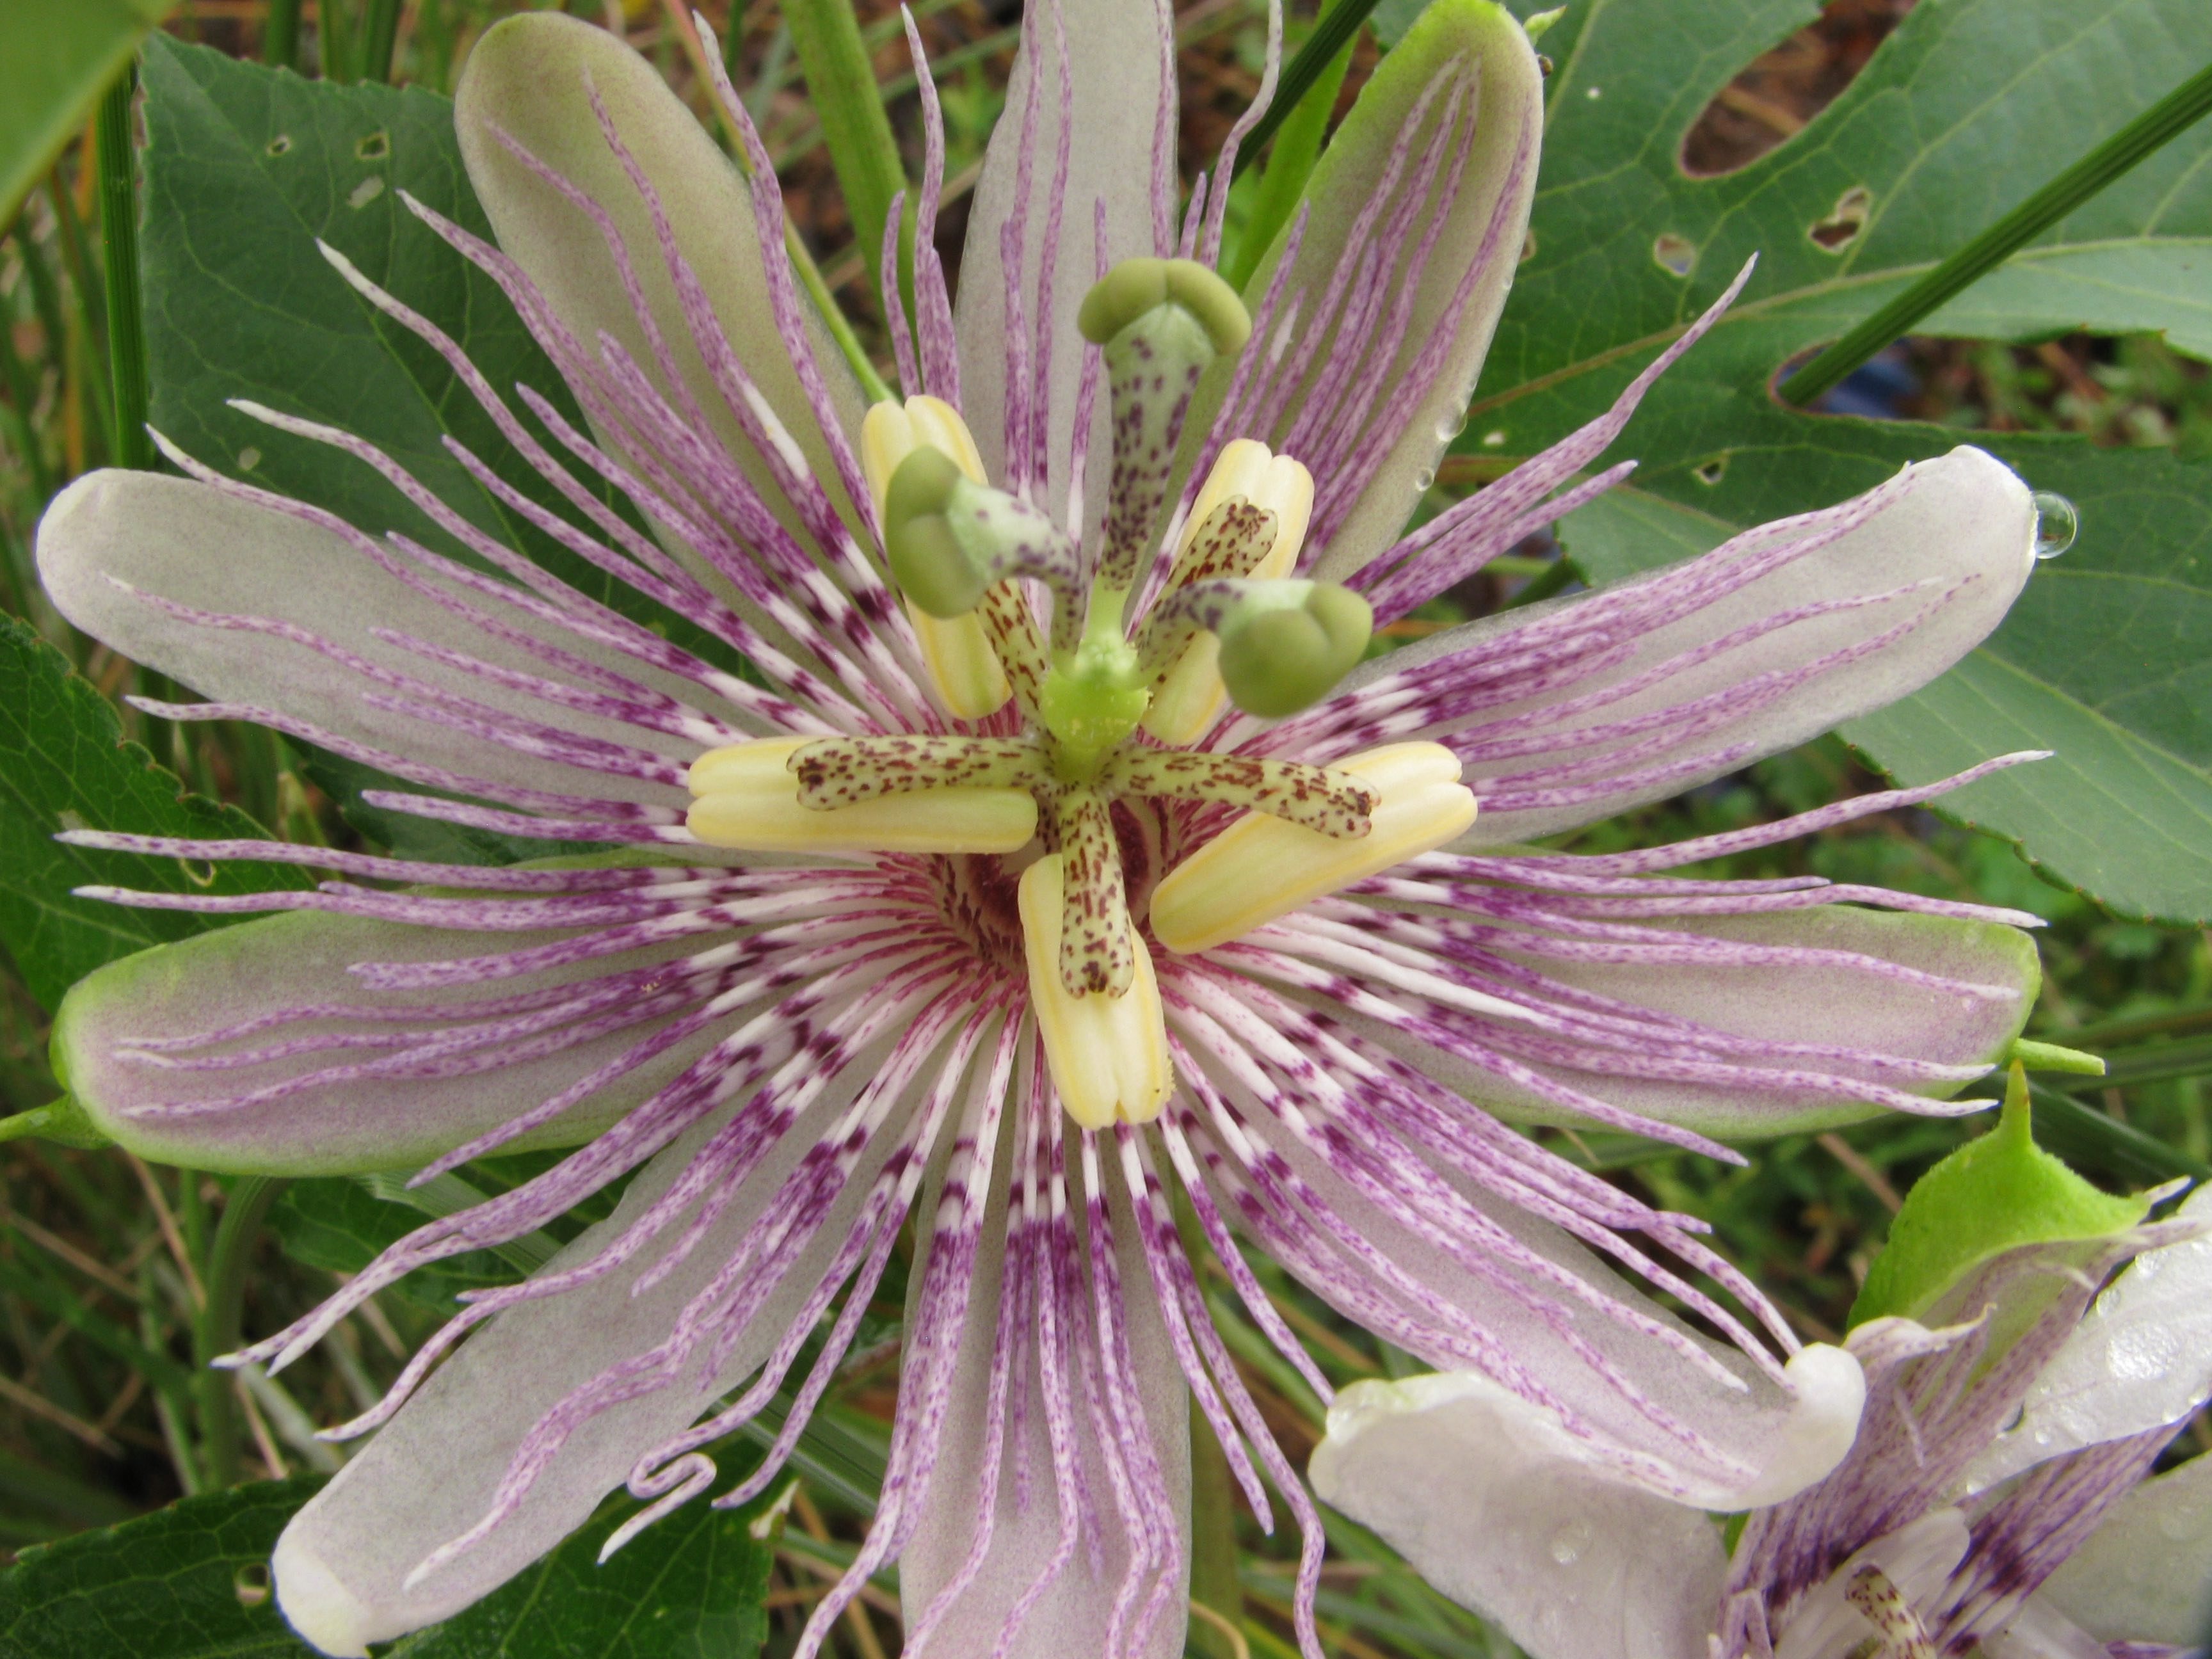 The Scientific Name is Passiflora incarnata. You will likely hear them called Purple Passionflower, Passion-vine, Maypops. This picture shows the Unique flower of Purple Passionflower in August with numerous thread-like structures of the corona (a structure between the corolla and the stamens simulating an additional part of the perianth) of Passiflora incarnata